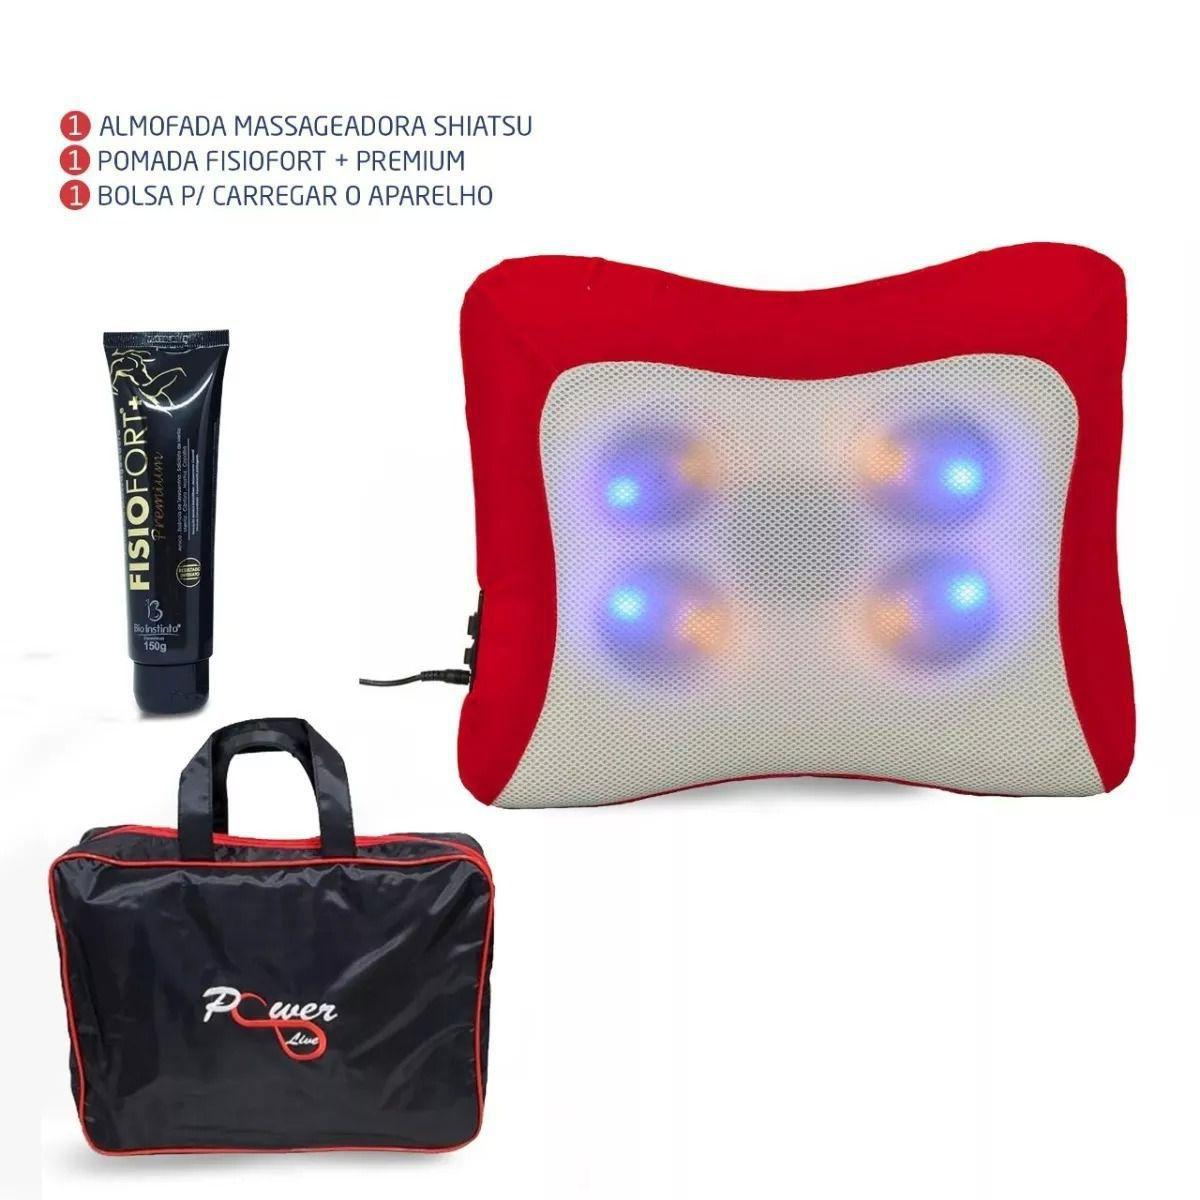 839f85372ab804 Almofada Massageadora Shiatsu - Power live